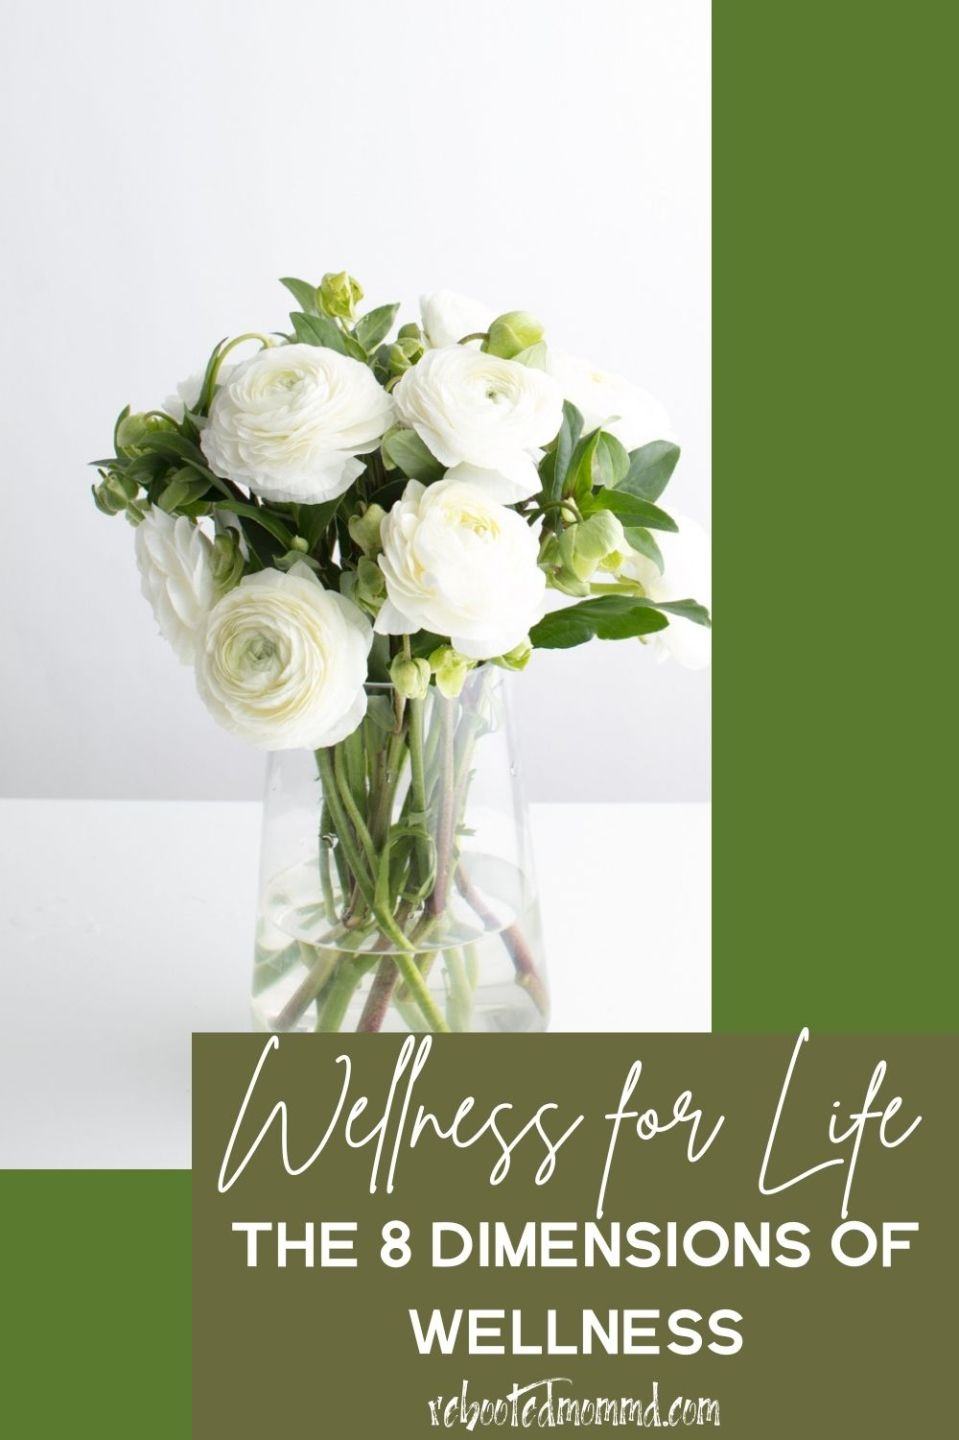 Wellness for Life: Looking at the 8 Dimensions of Wellness